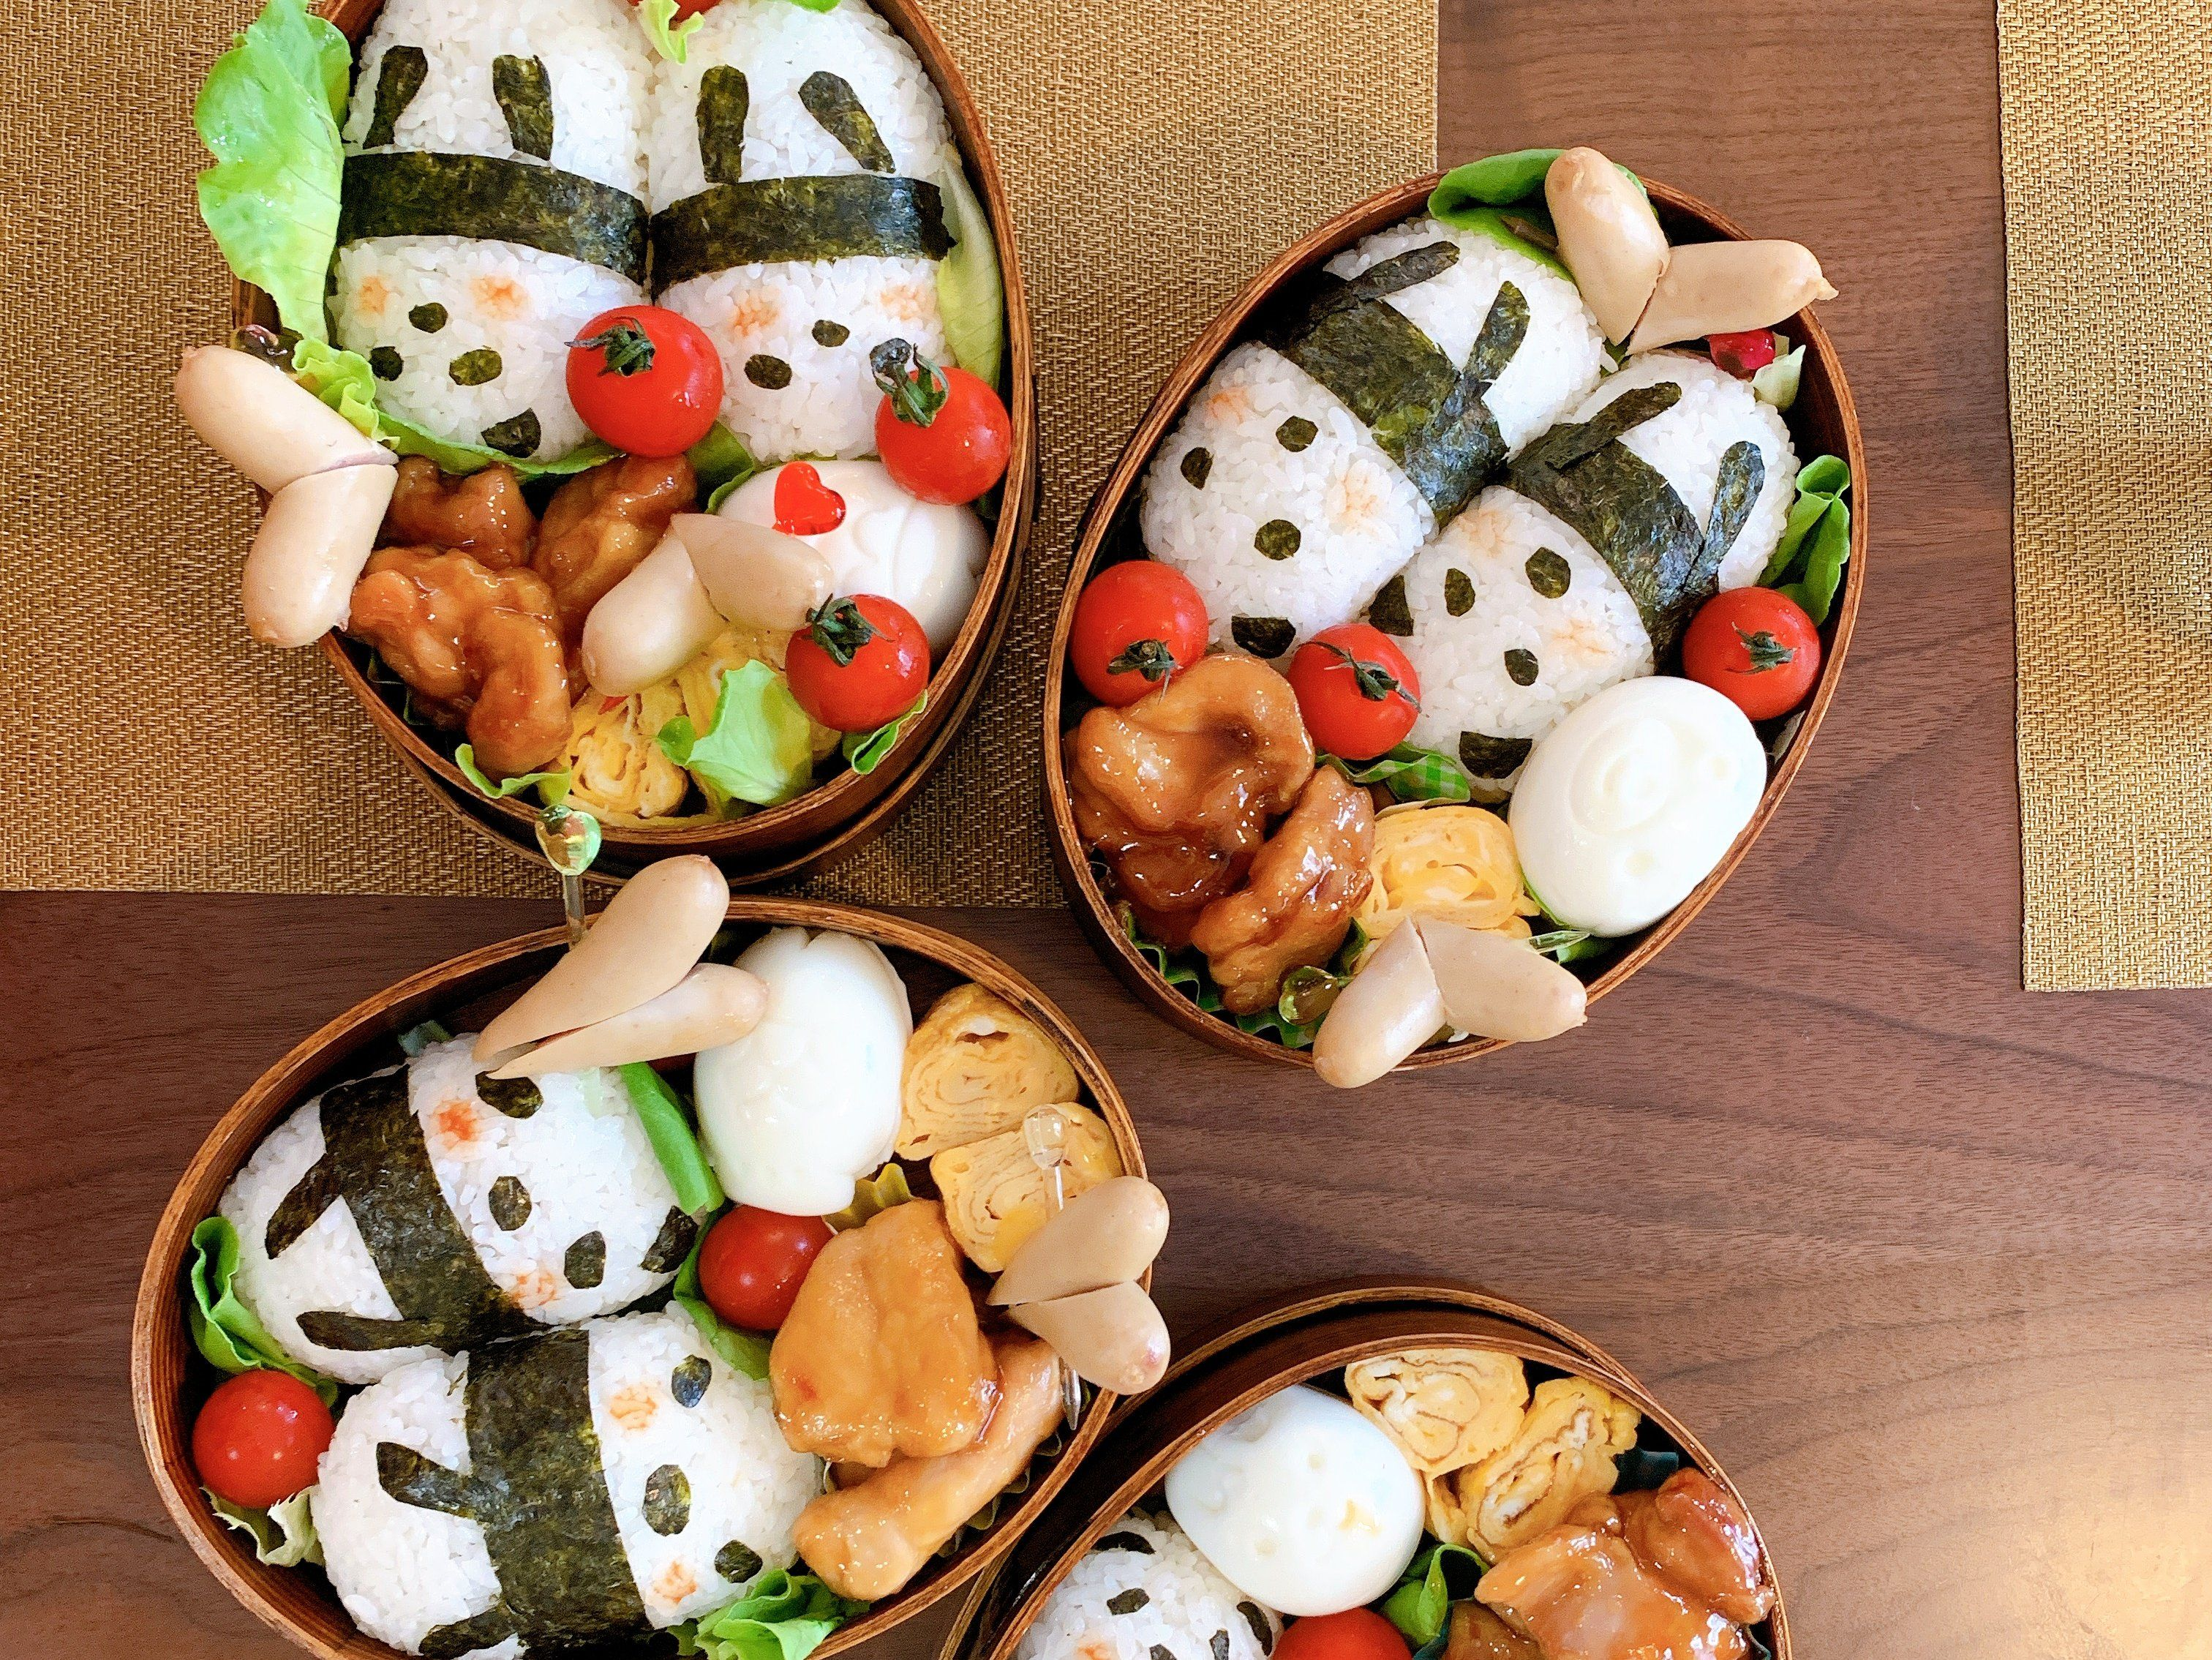 Mayuko S Little Kitchen Japanese Cooking Class Prepare Panda Bento Box At A Private Home Kitchen Book Online Cookly